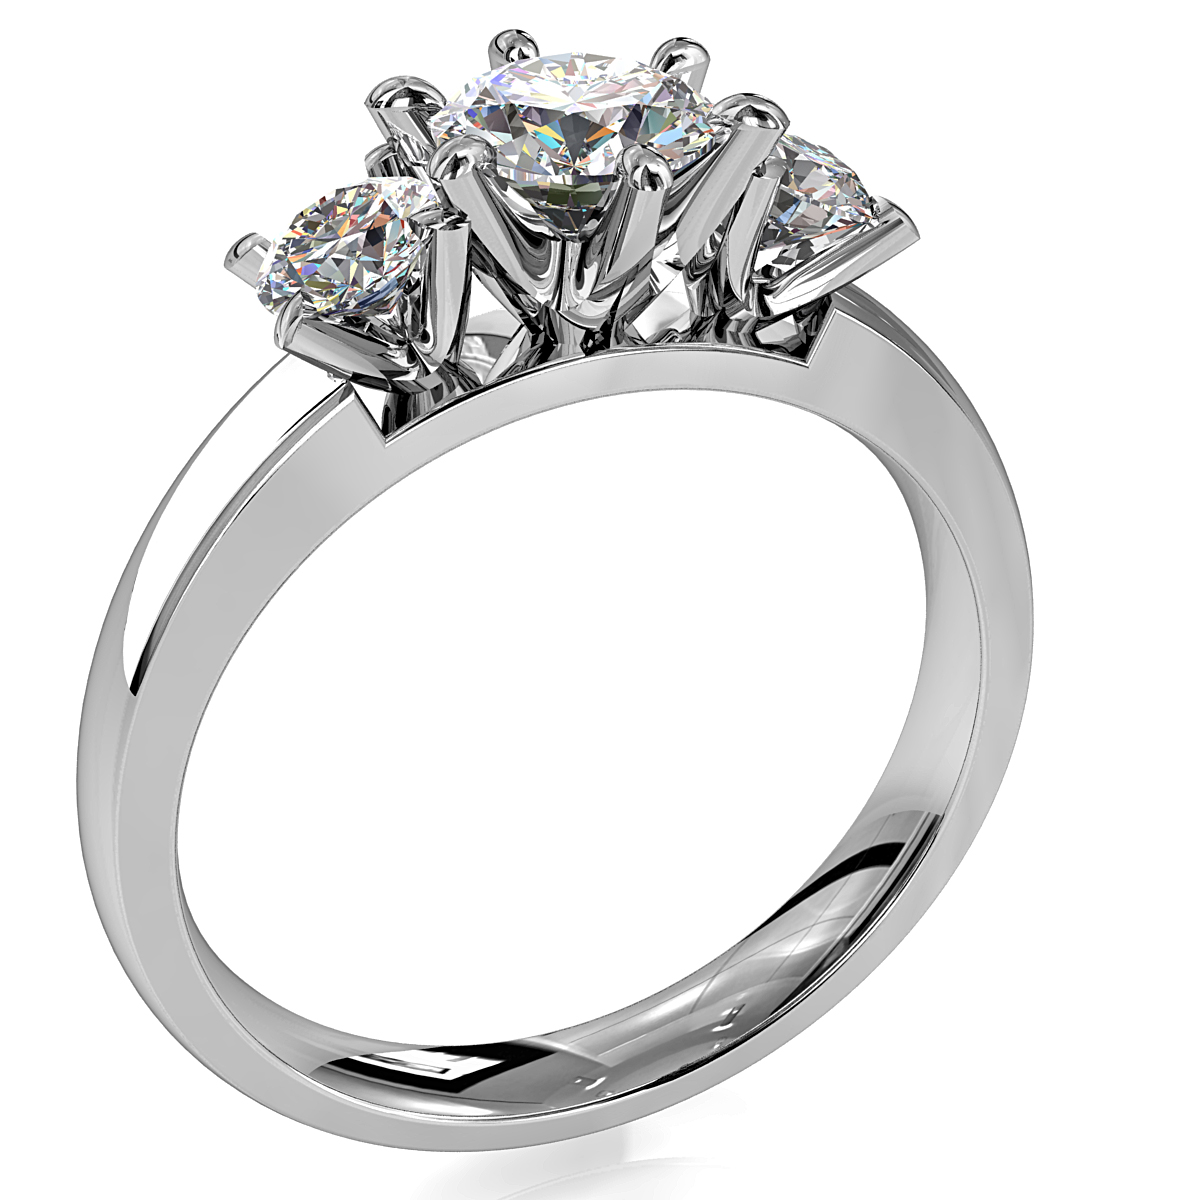 Round Brilliant Cut Diamond Trilogy Engagement Ring, Centre 6 Claw Set with 4 Claw Set Pear Side Stones with a Classic Crown Setting.